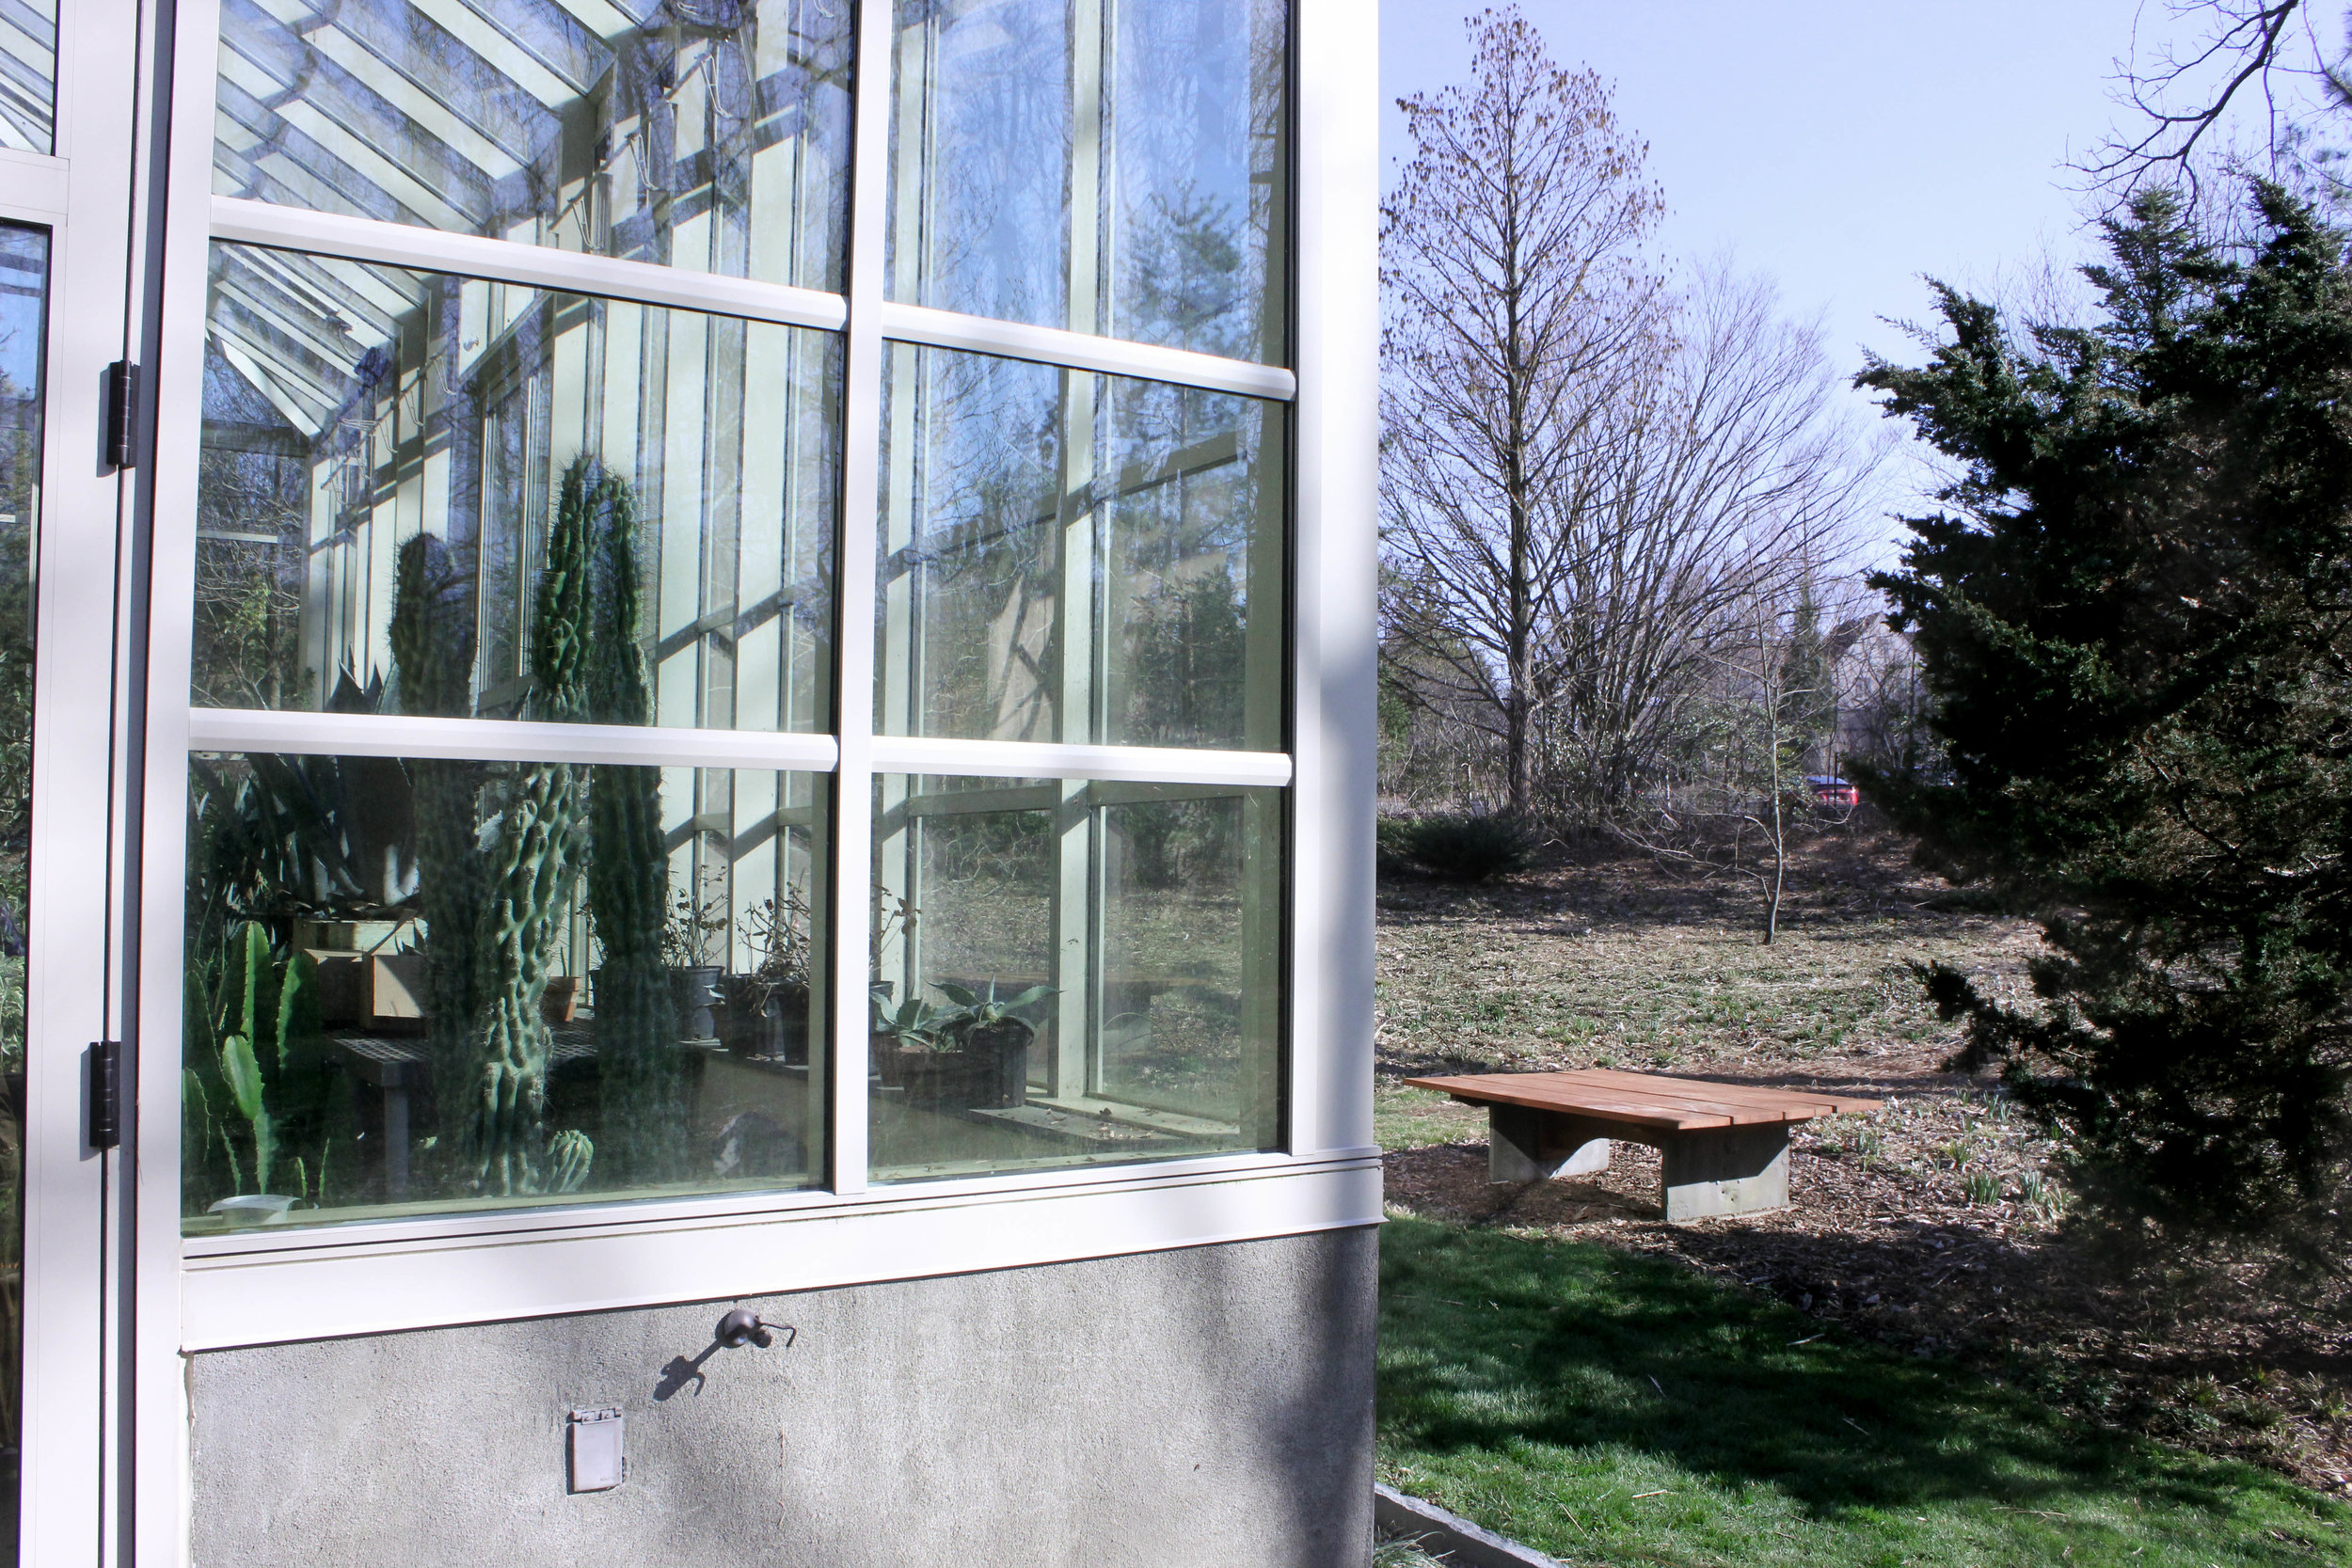 greenhouse and bench-0840.jpg